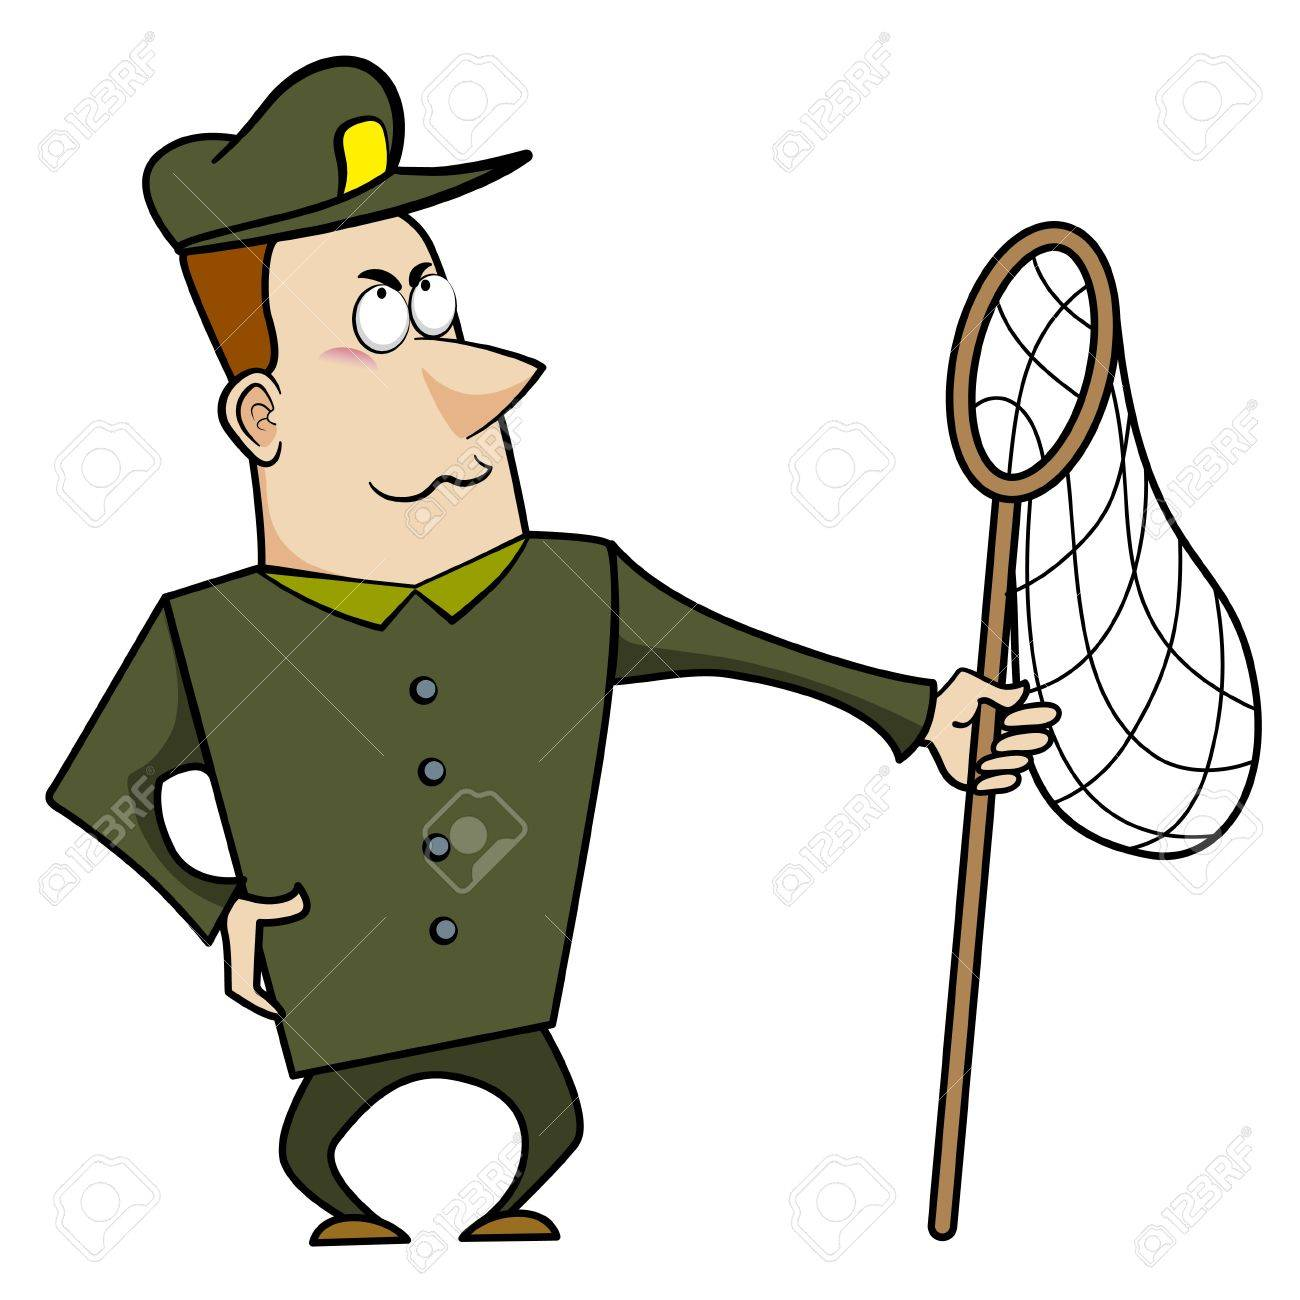 Cartoon animal control officer holding a net for catching animals Stock Vector - 18404636